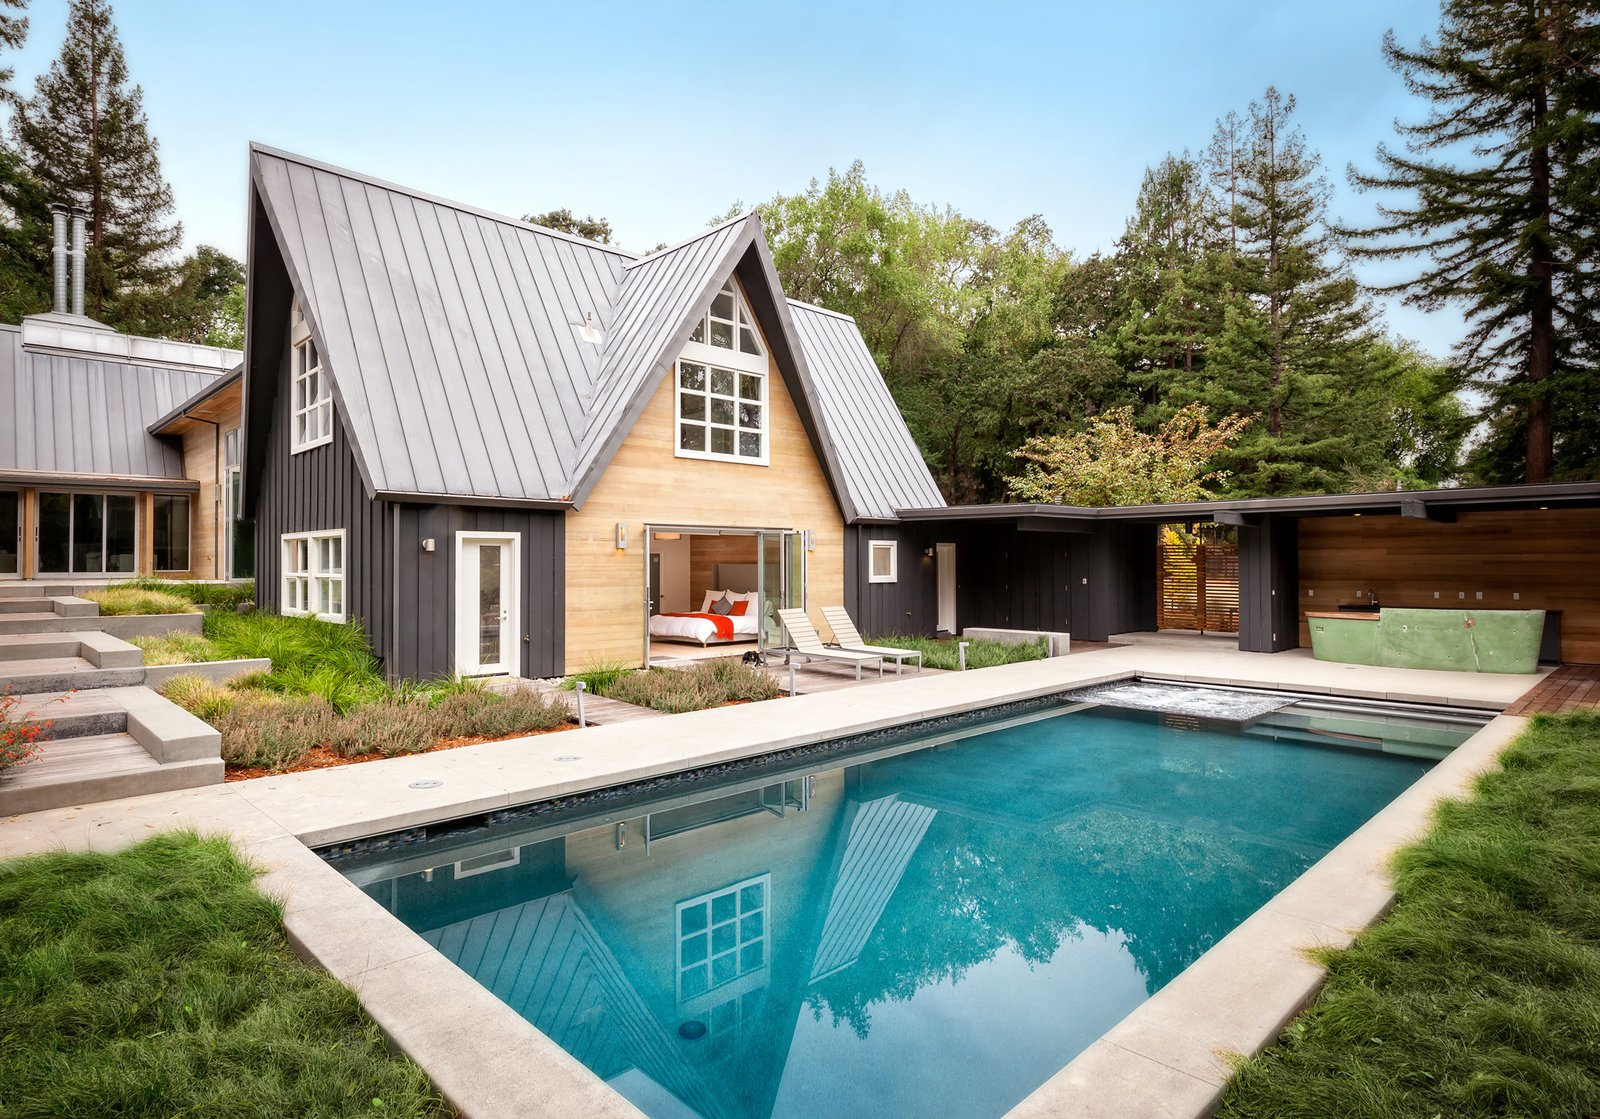 Dwell Home Tours Lands in Silicon Valley